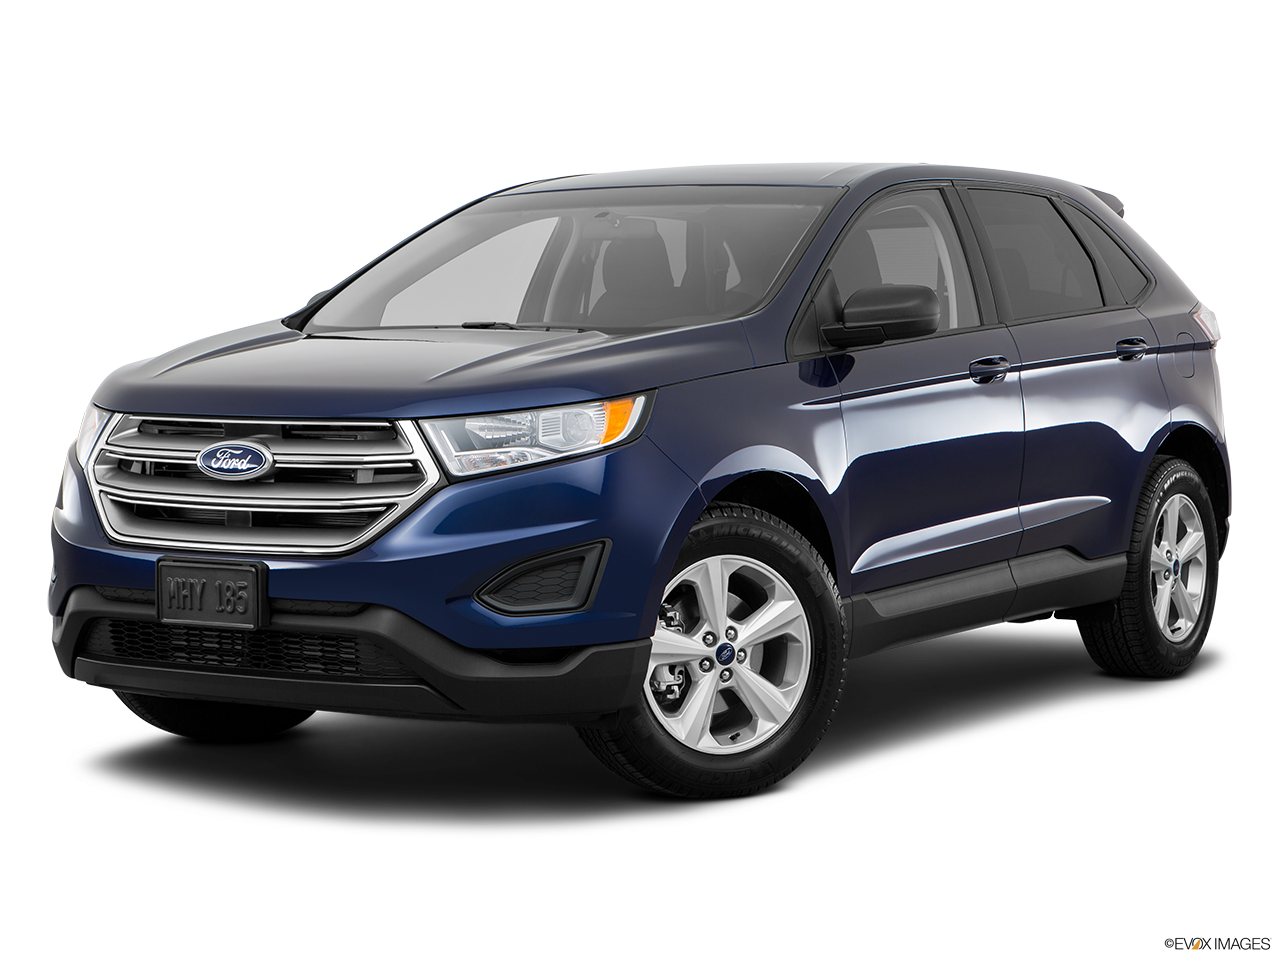 Test Drive A 2016 Ford Edge at All Star Ford Palestine in Palestine